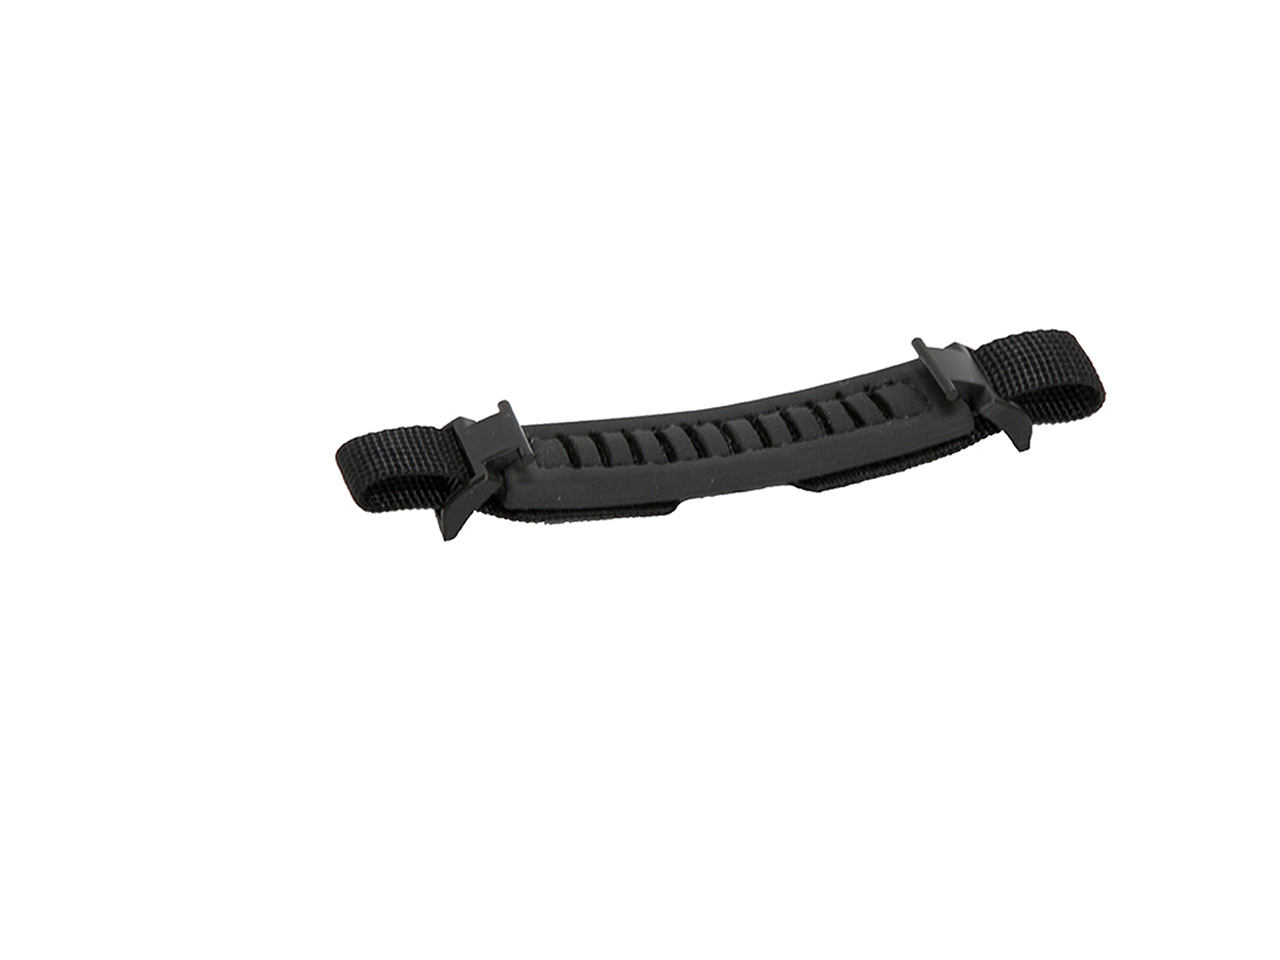 CE196A-Handheld-400X-Series-Finger-Strap-with-Fifty-Buckles-3.jpg